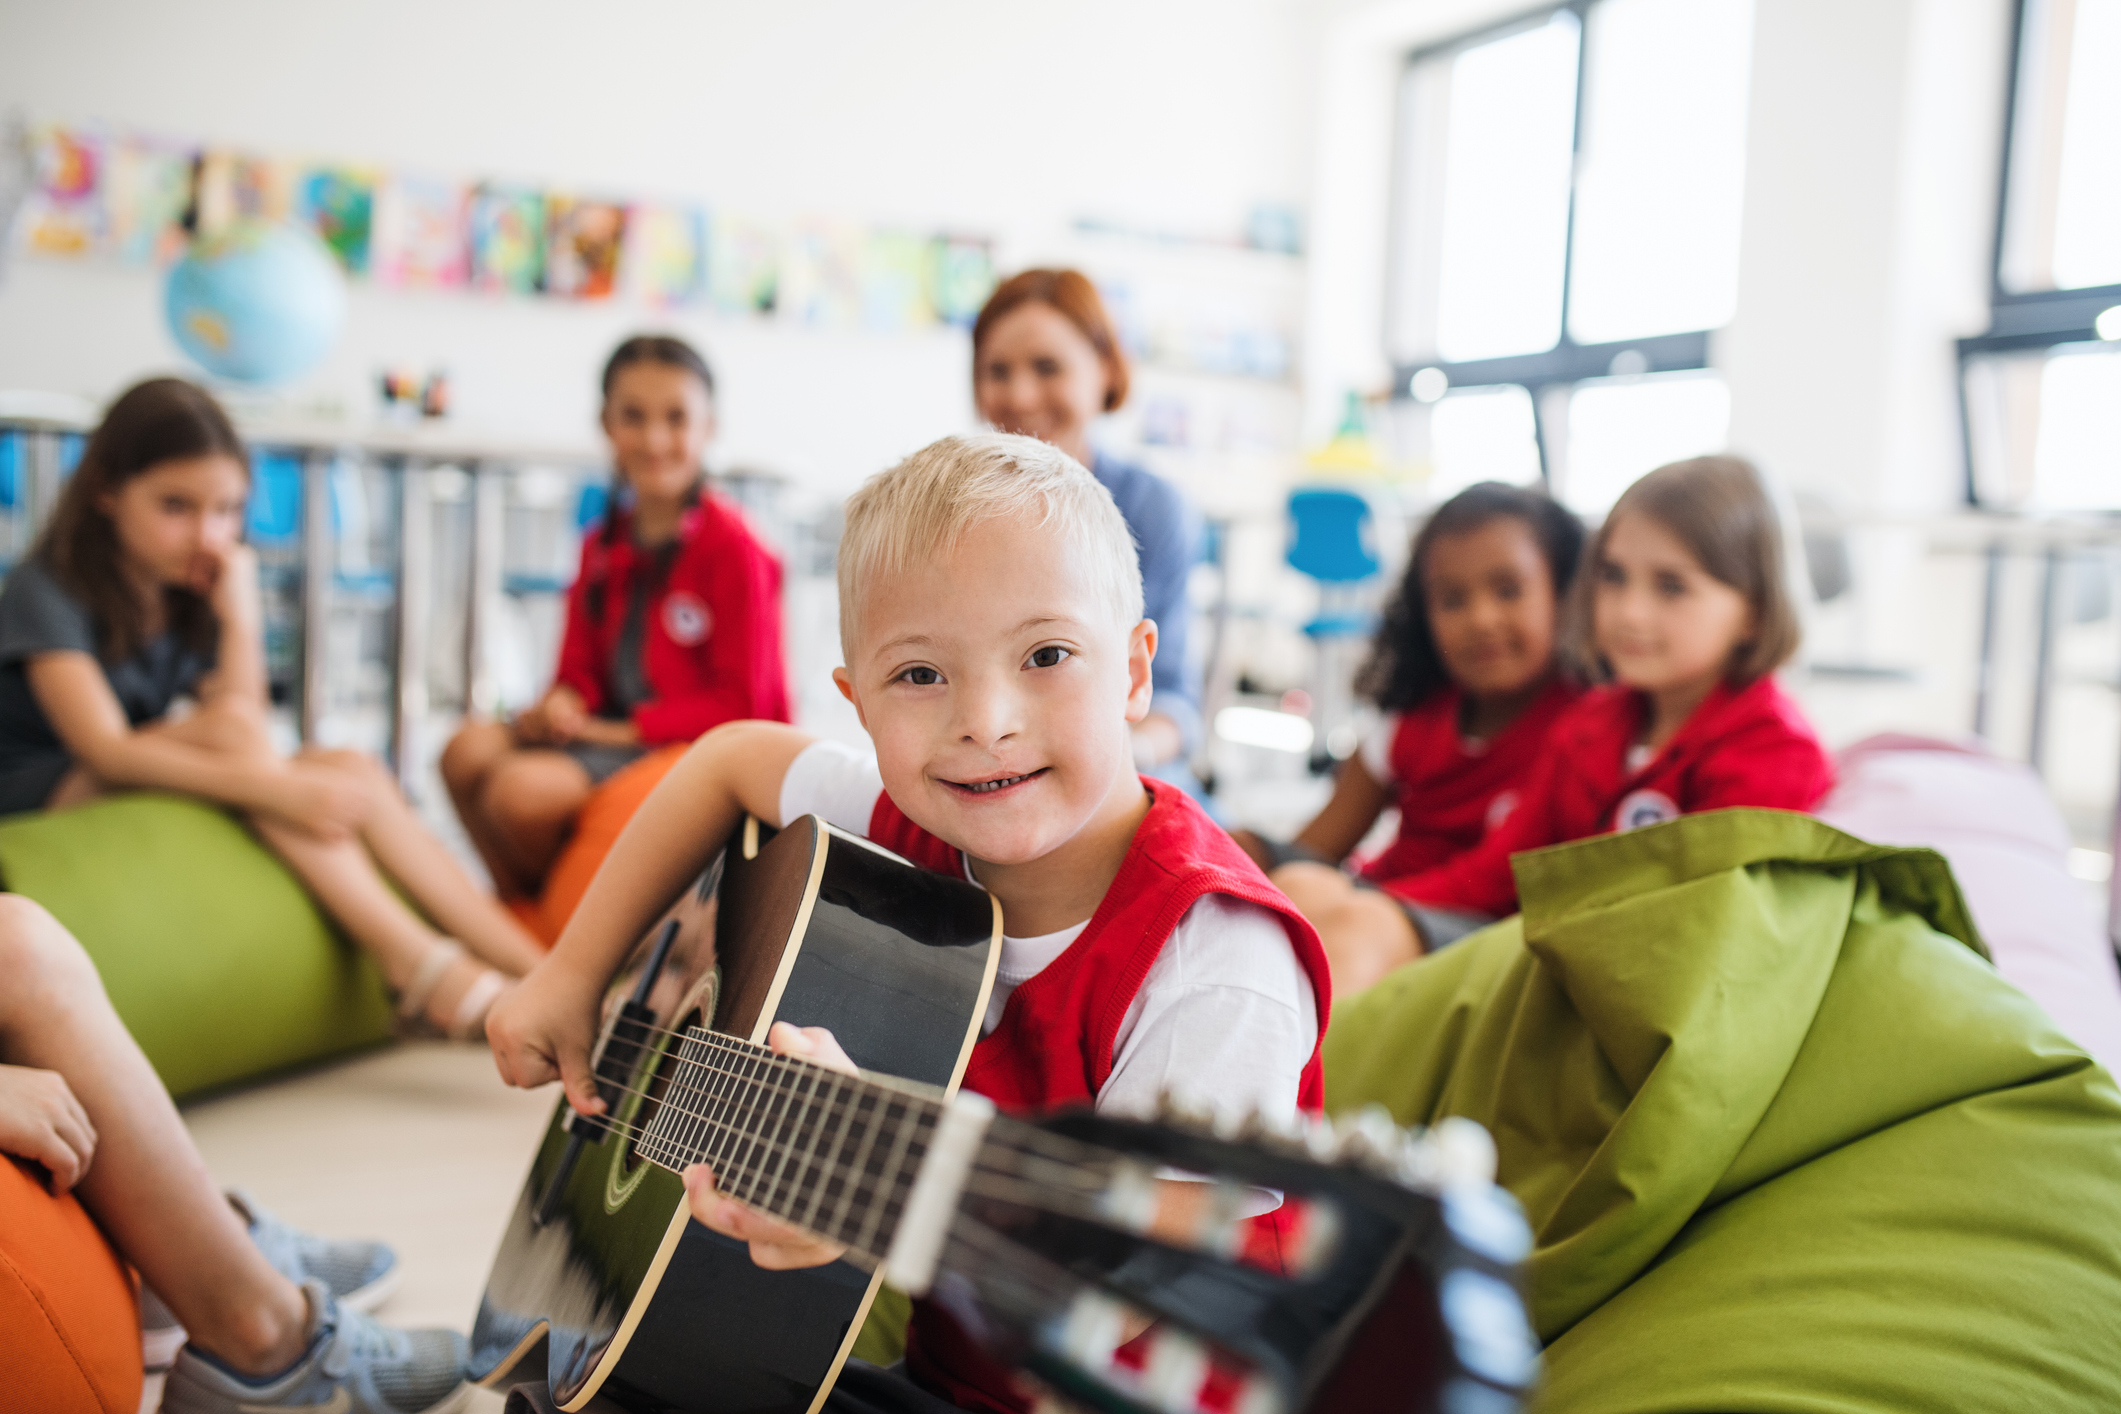 A boy with Down-syndrome playing guitar.